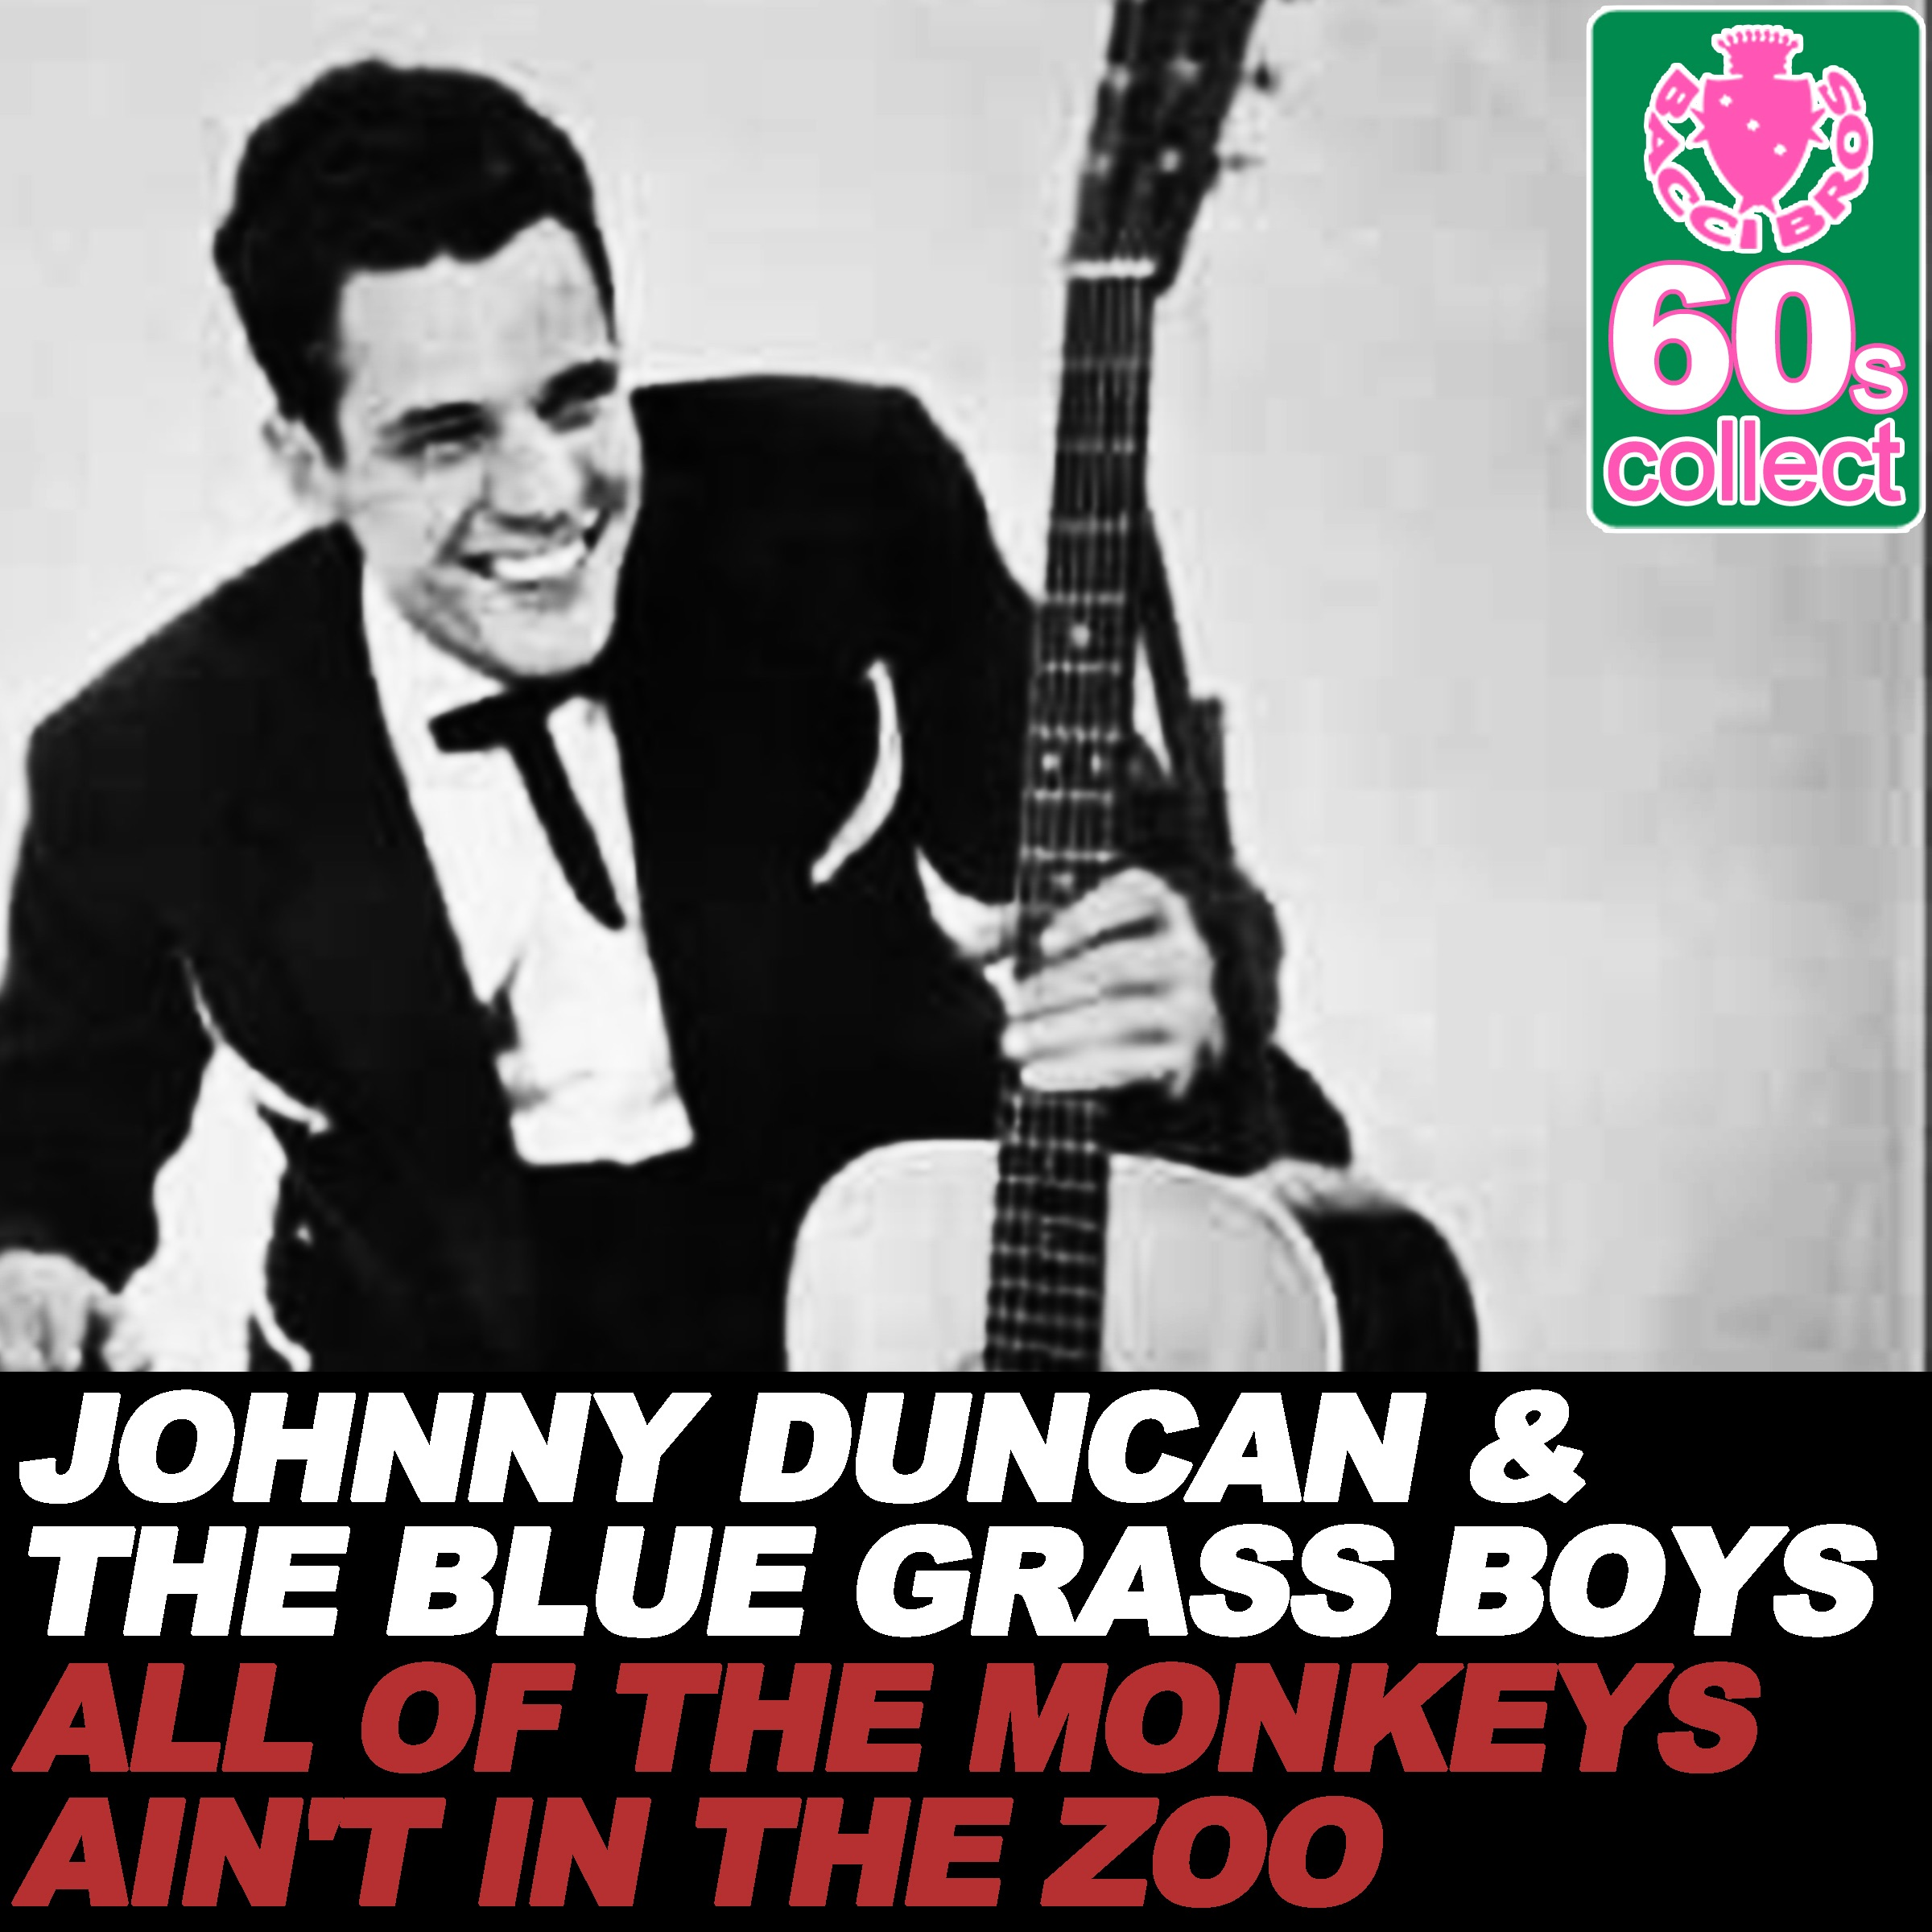 All of the Monkeys Ain't in the Zoo (Remastered) - Single